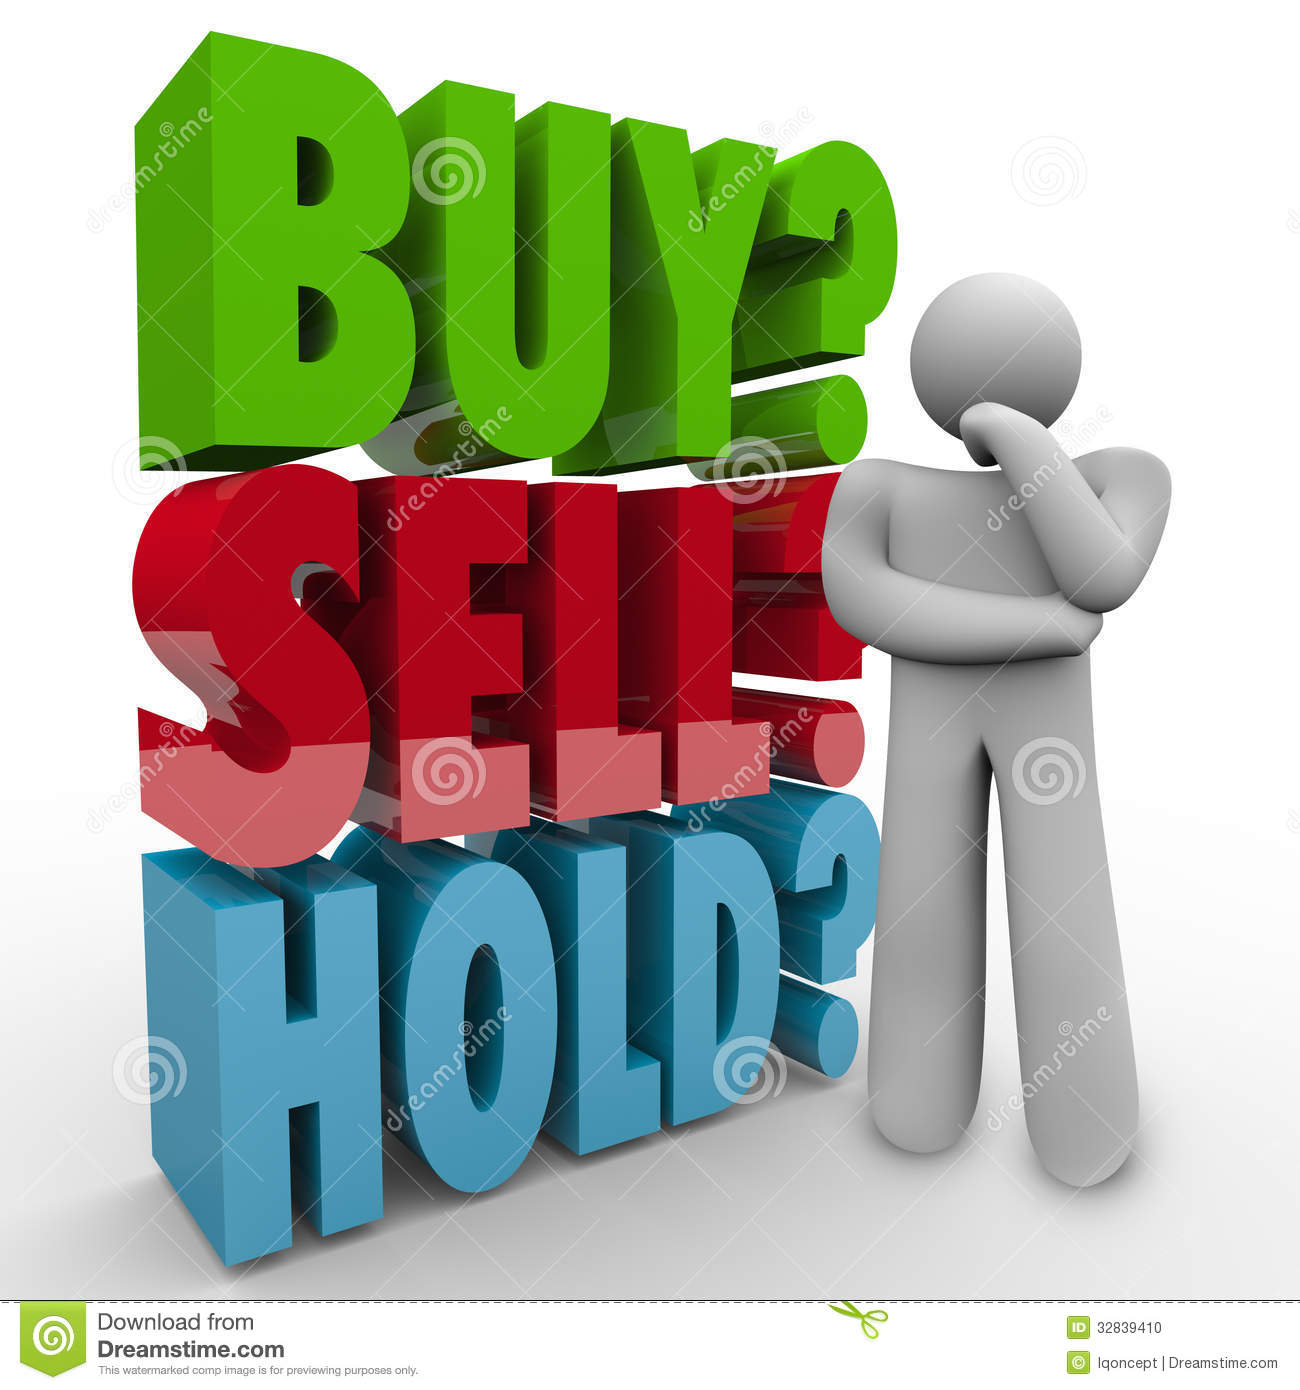 How to Buy Stocks: www.shminhe.com/images/12859.html